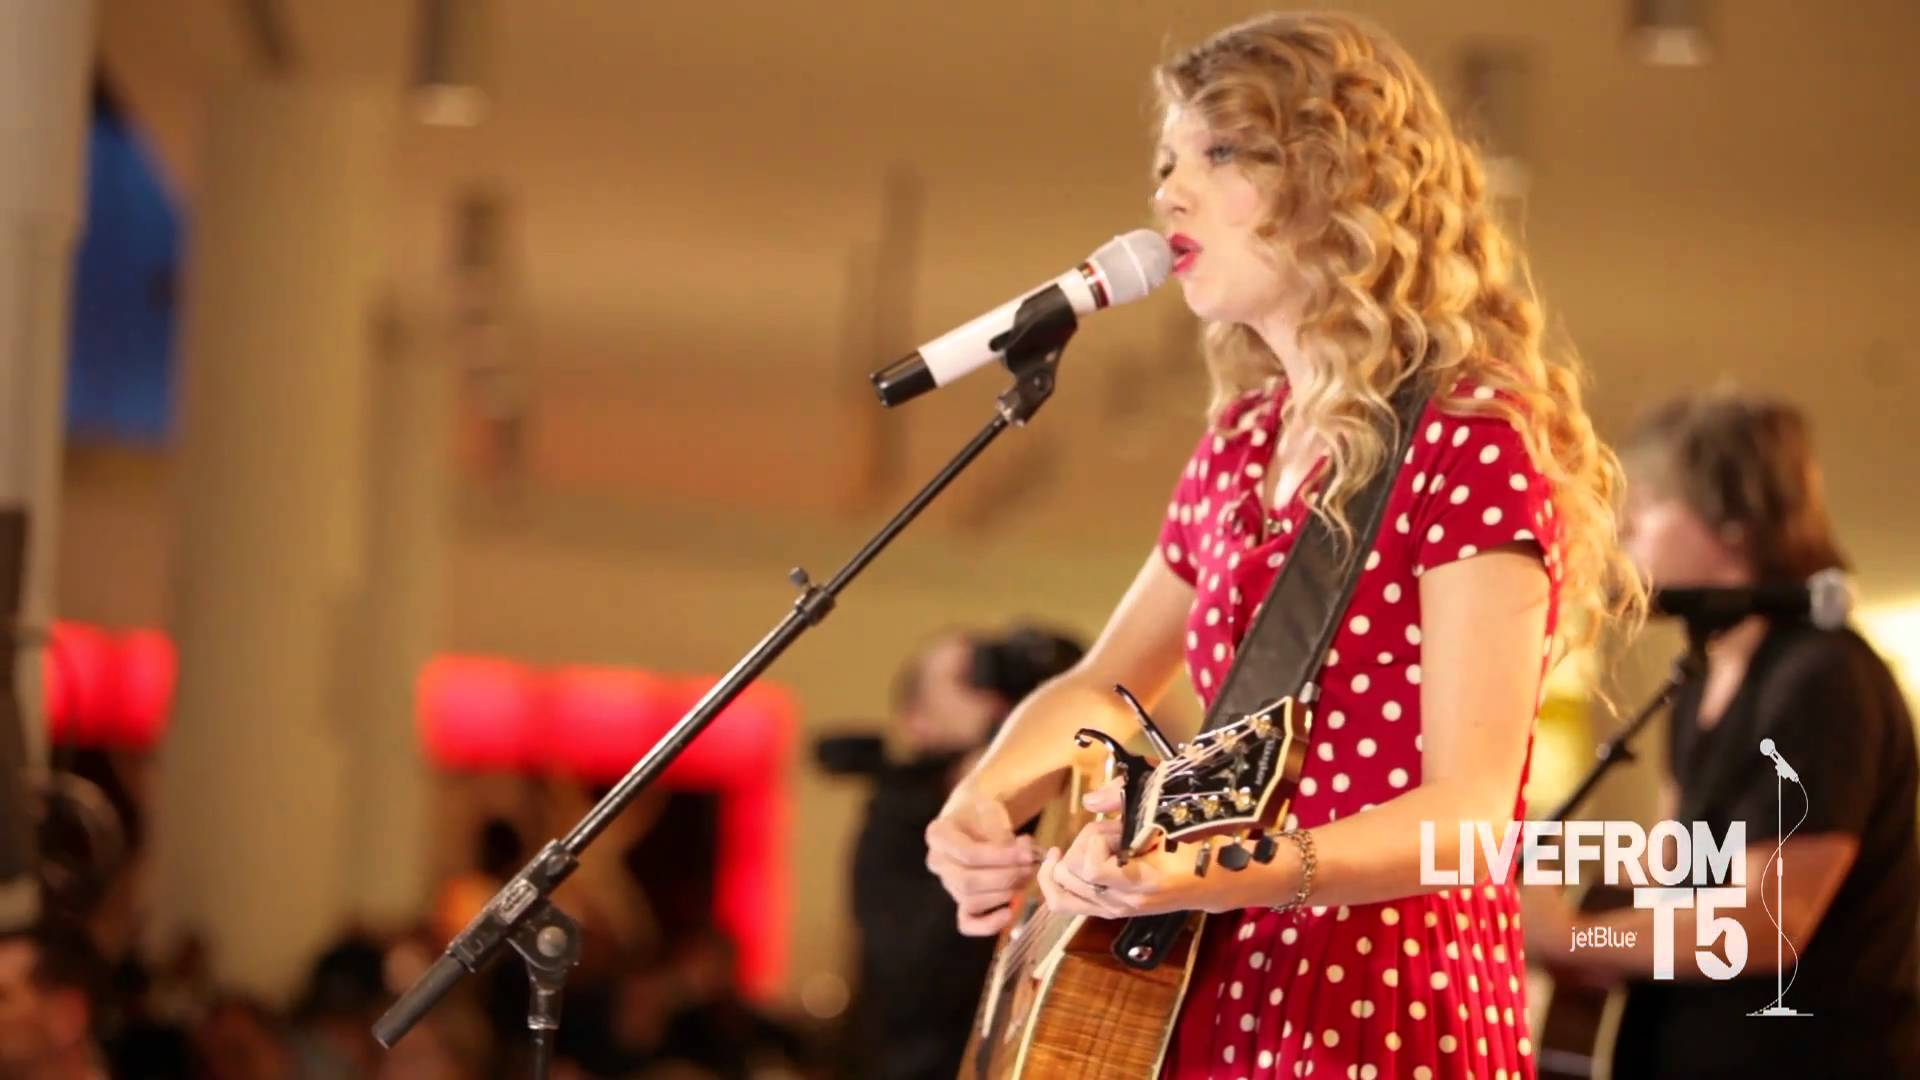 Taylor Swift singing with guitar